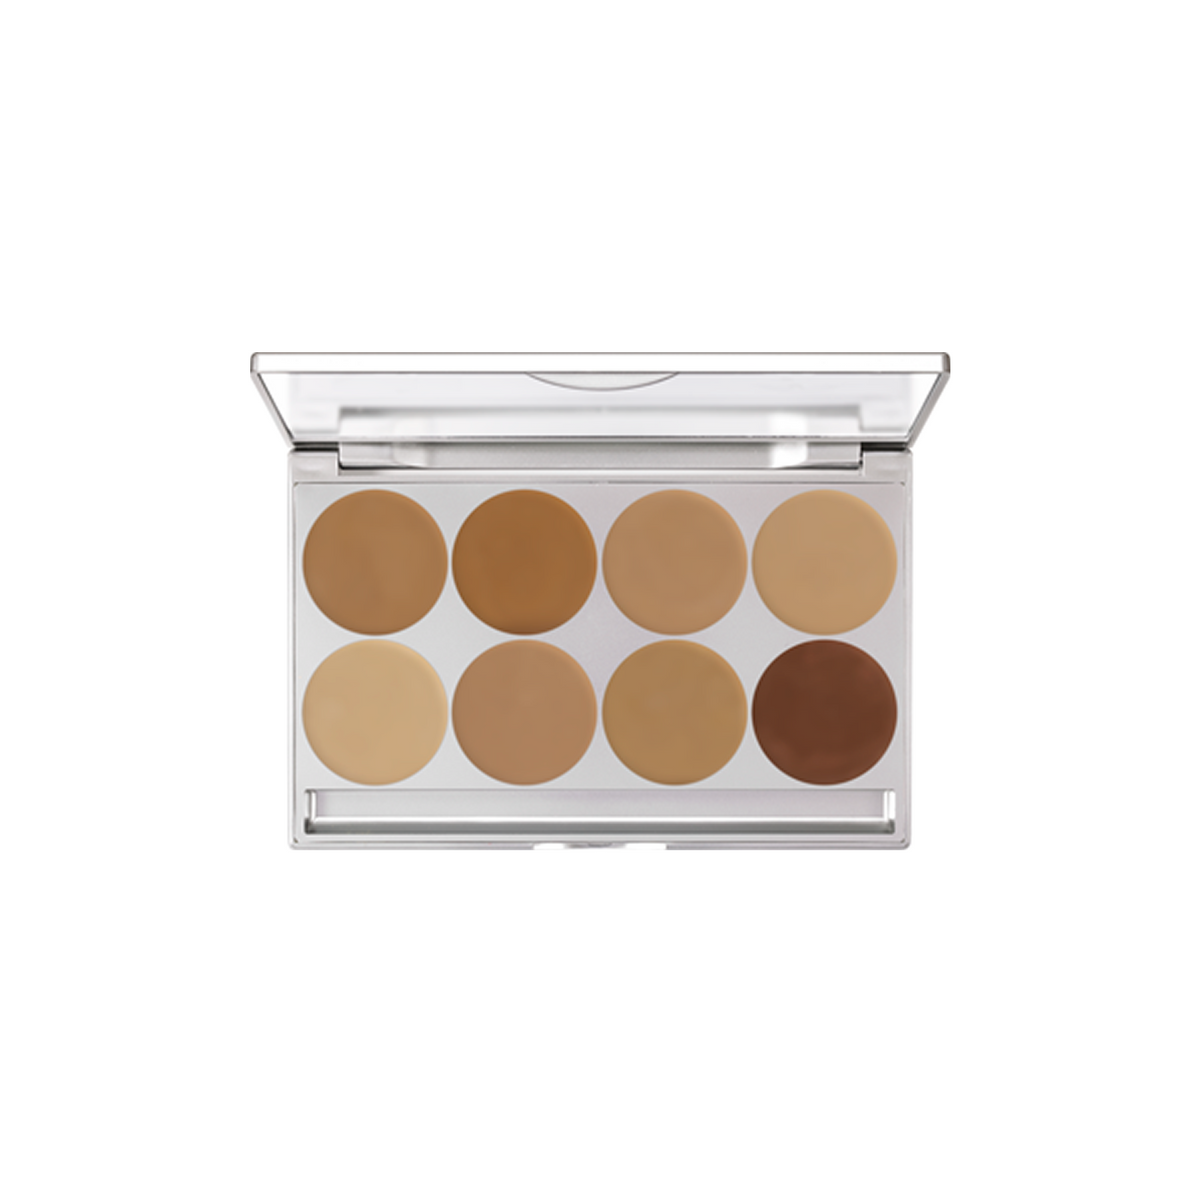 Kryolan HD Micro Foundation Creme 8 Colour Palette (MFC1) - Red Carpet FX - Professional Makeup